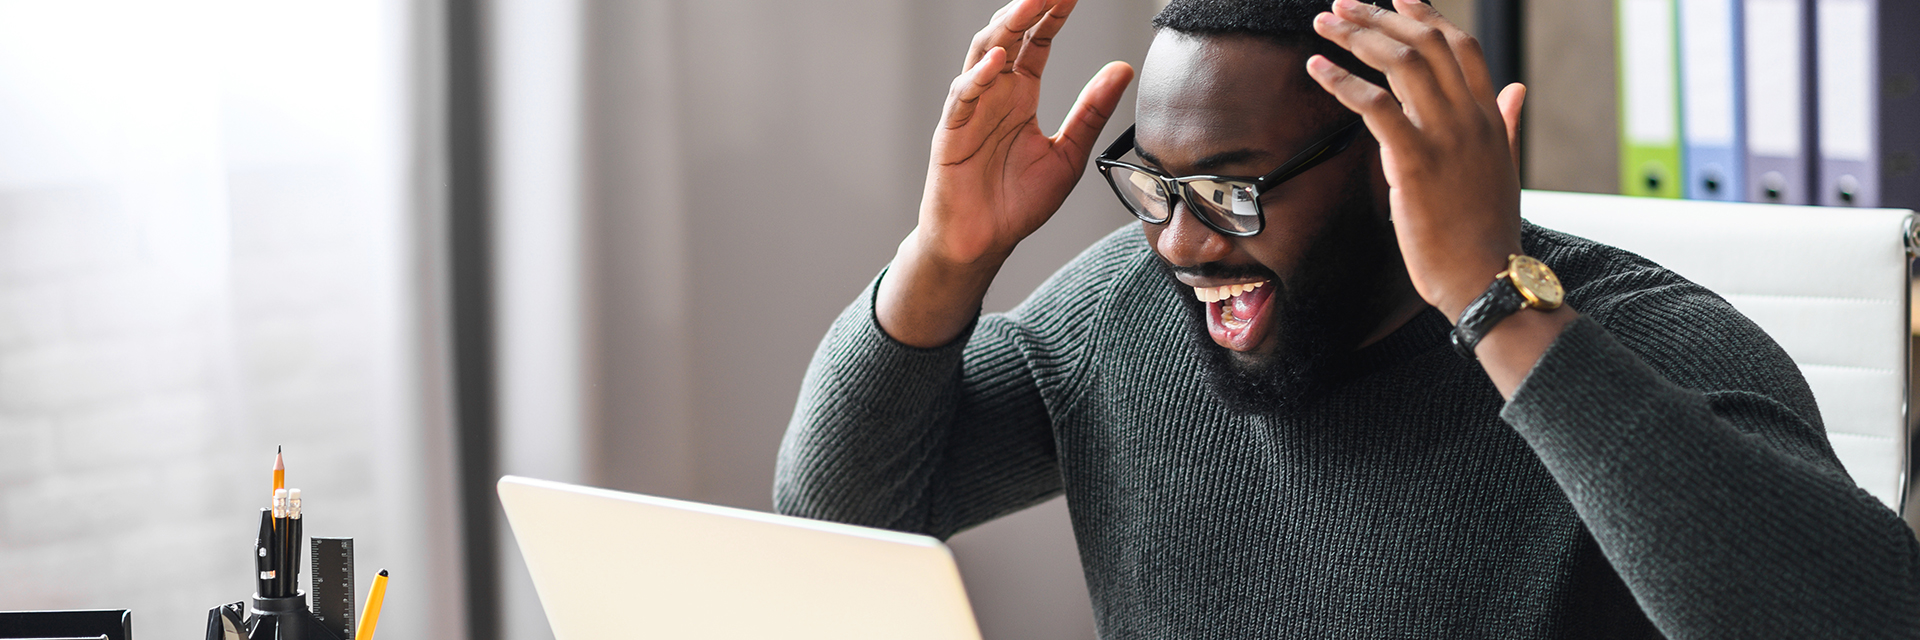 Excited Black man smiles at his computer like he won something